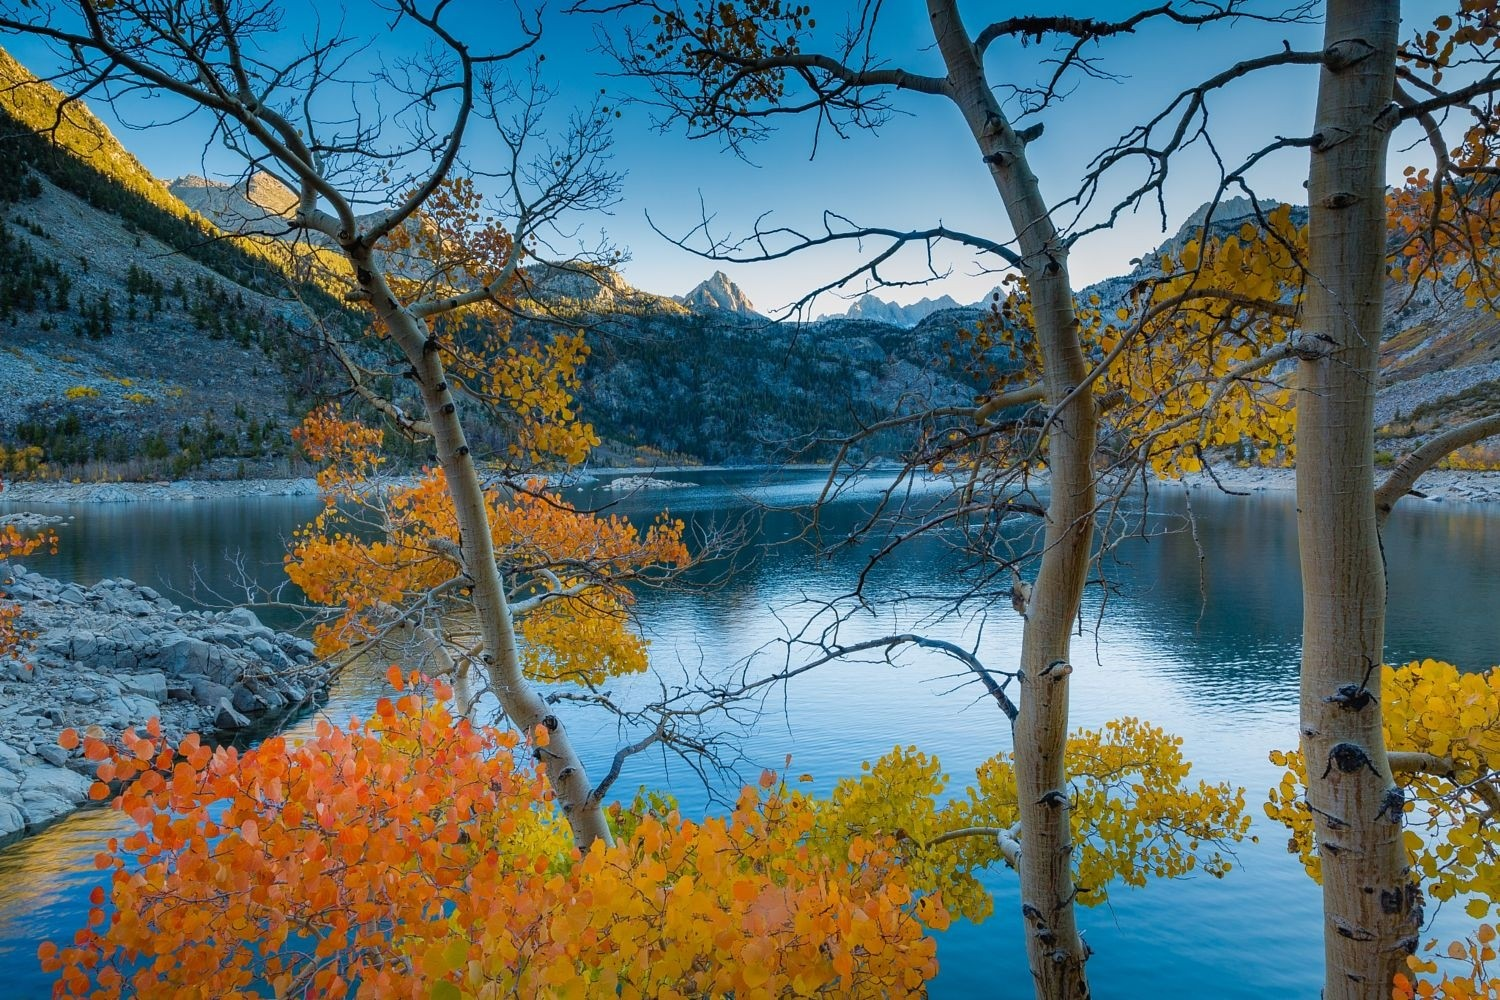 General 1500x1000 photography nature landscape lake mountains trees fall morning sunlight calm waters California